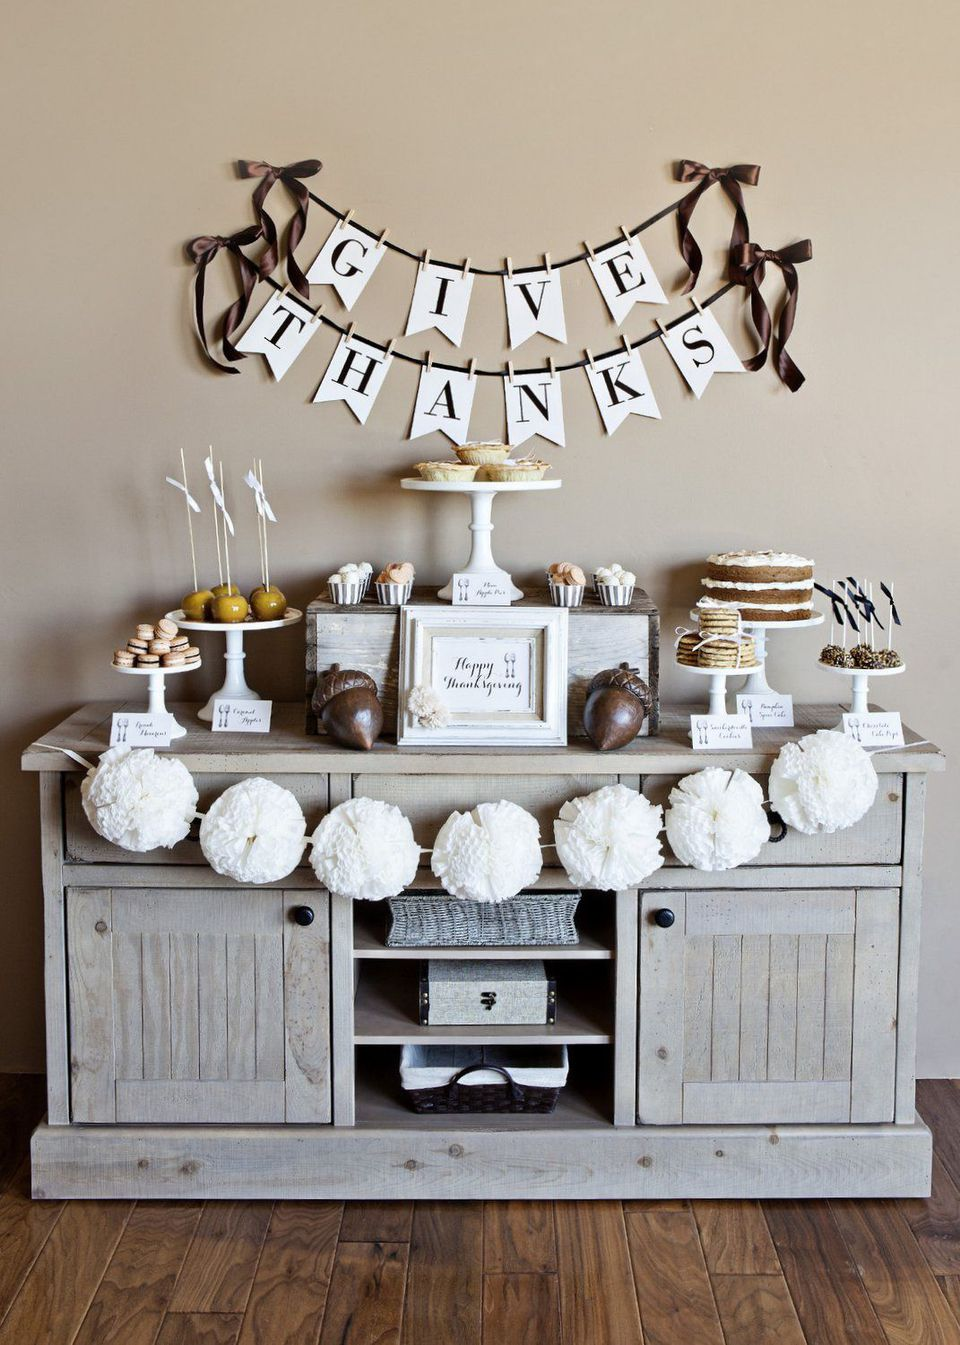 25 affordable ways to decorate your home for thanksgiving How to decorate your house for thanksgiving